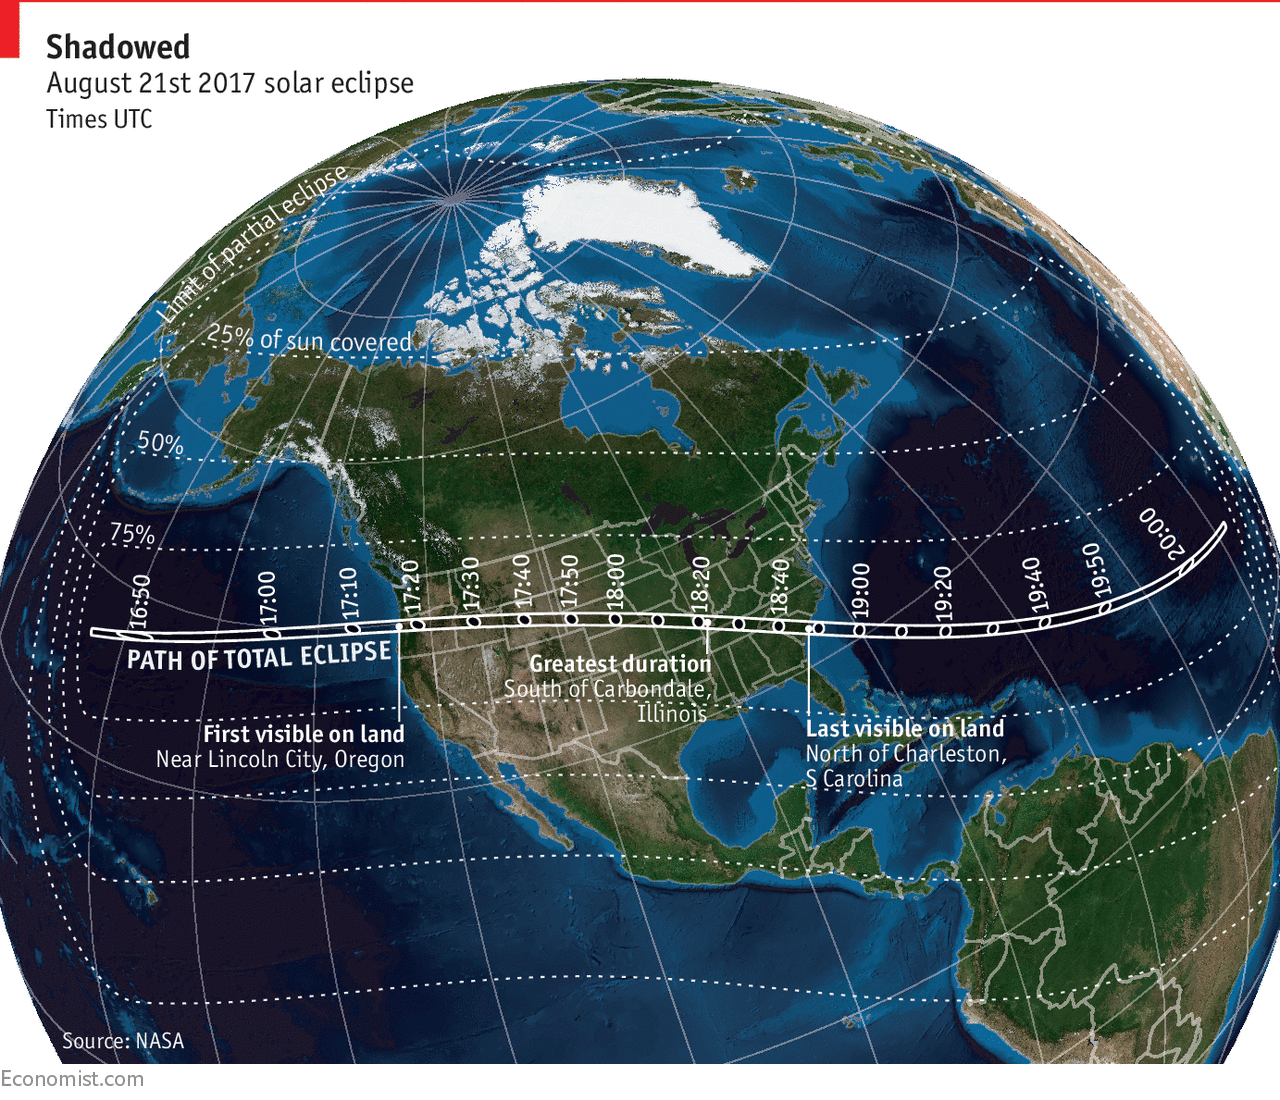 The serendipity of the total eclipse